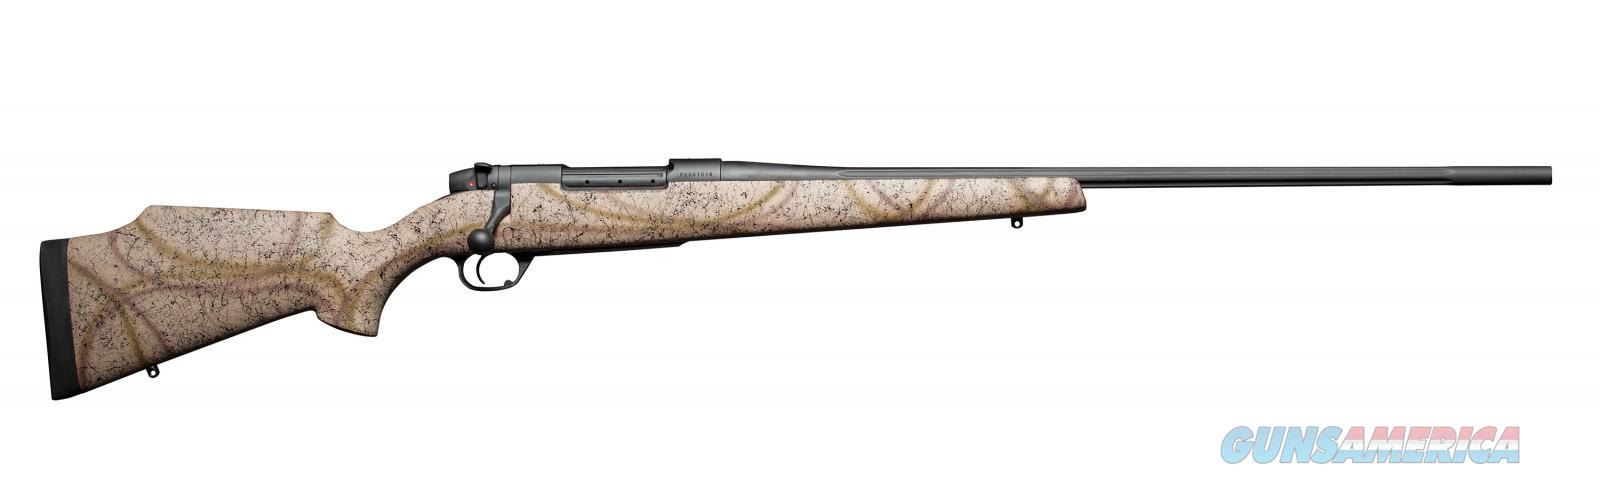 """Weatherby Mark V Outfitter .270 Winchester 22""""  MOTS270NR2O   Guns > Rifles > Weatherby Rifles > Sporting"""